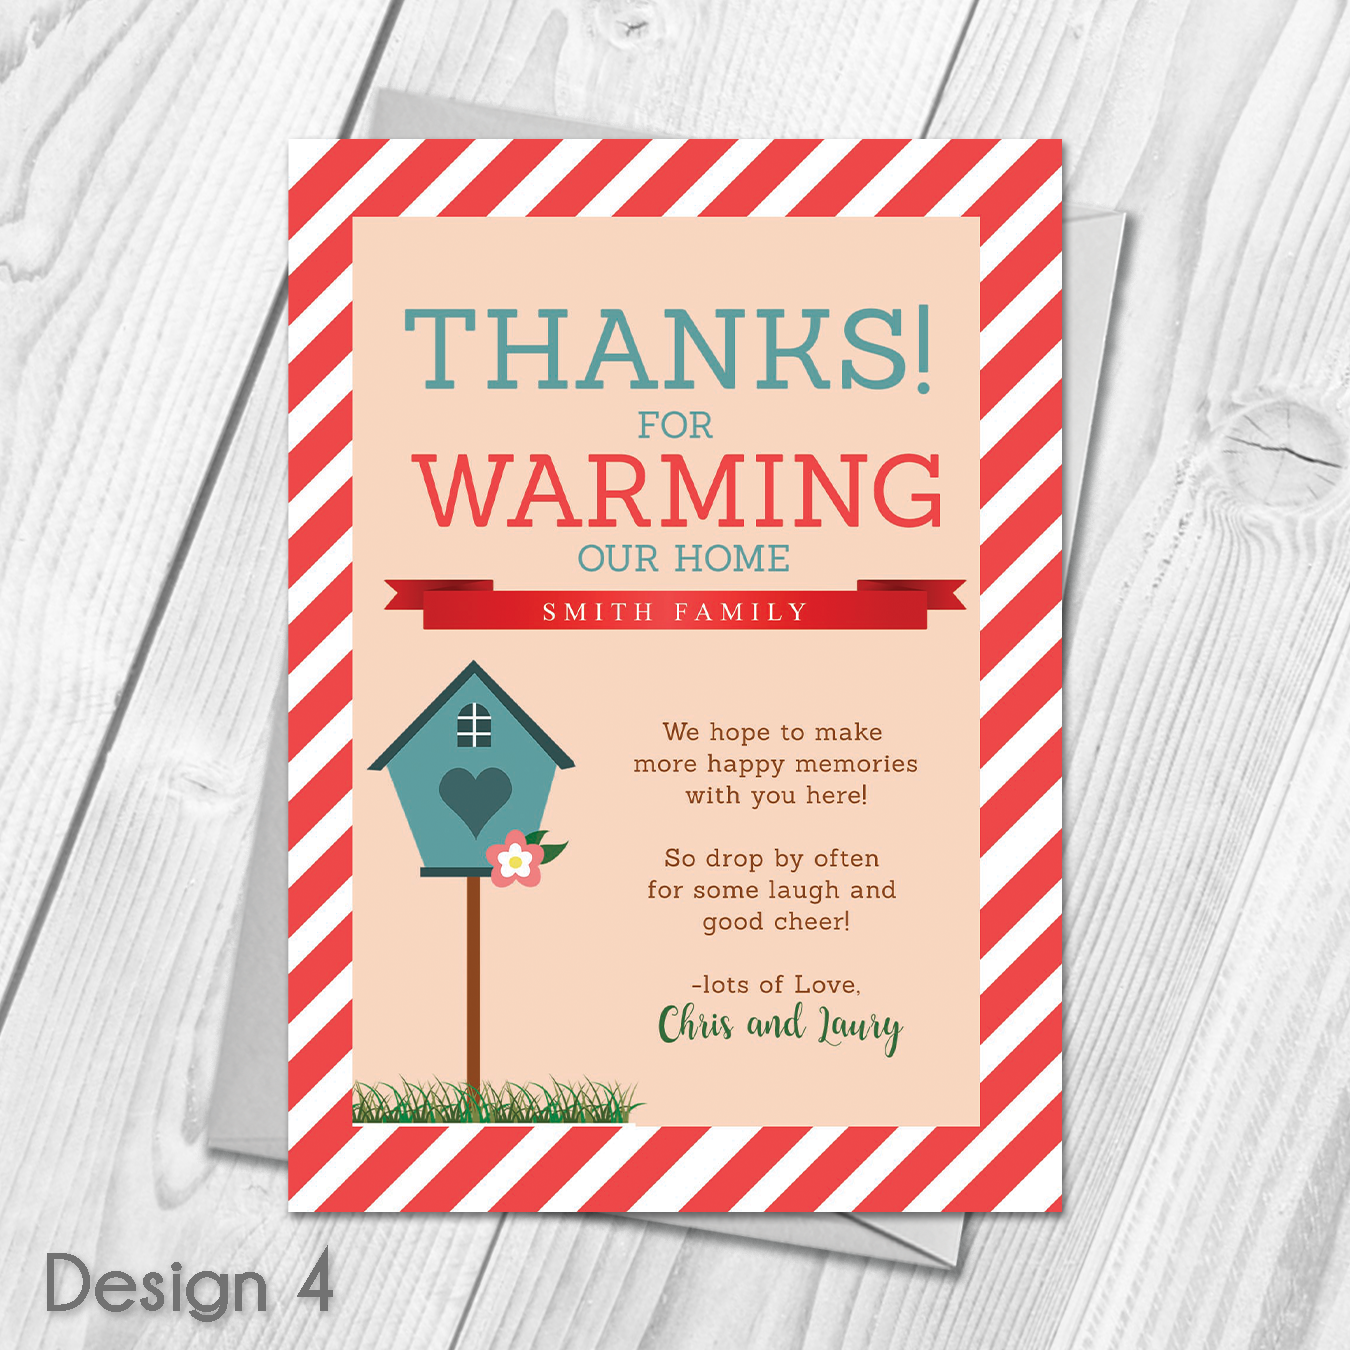 Custom Made With Your Own Personalised Text Product Specifications Choose Y House Warming Invitations Personalized Thank You Cards Personalized House Warming